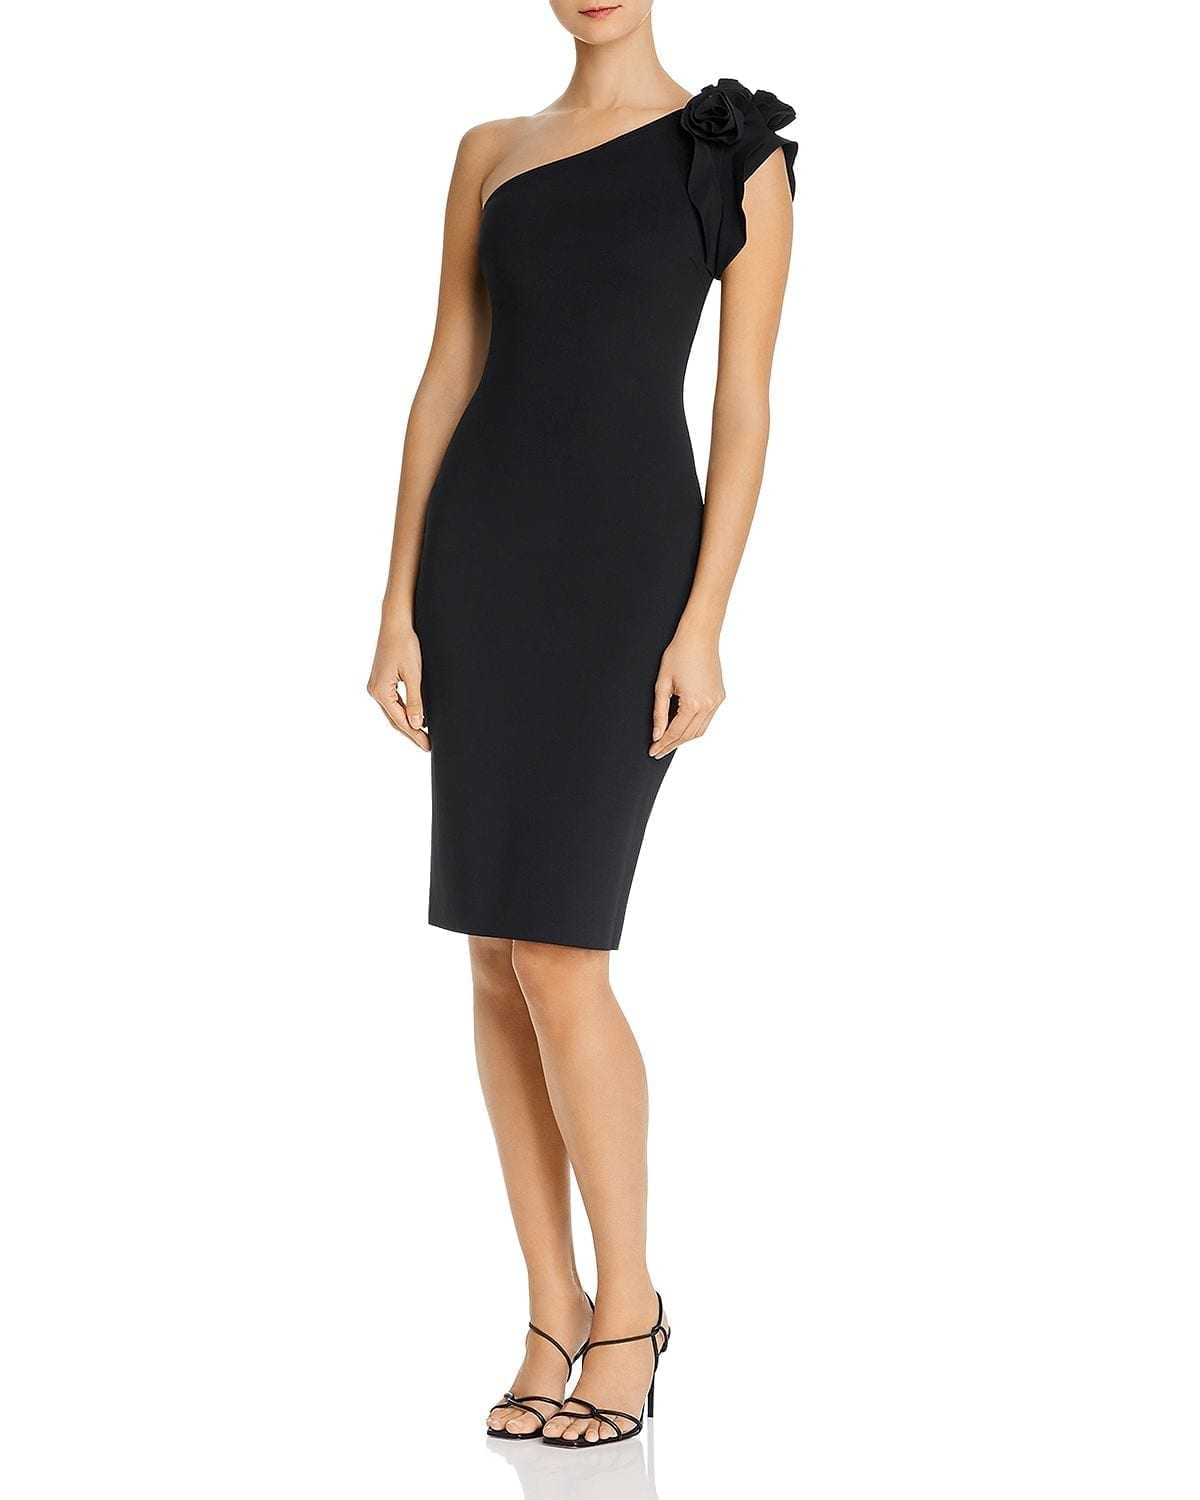 CHIARA BONI LA PETITE ROBE Enrica One-Shoulder Dress